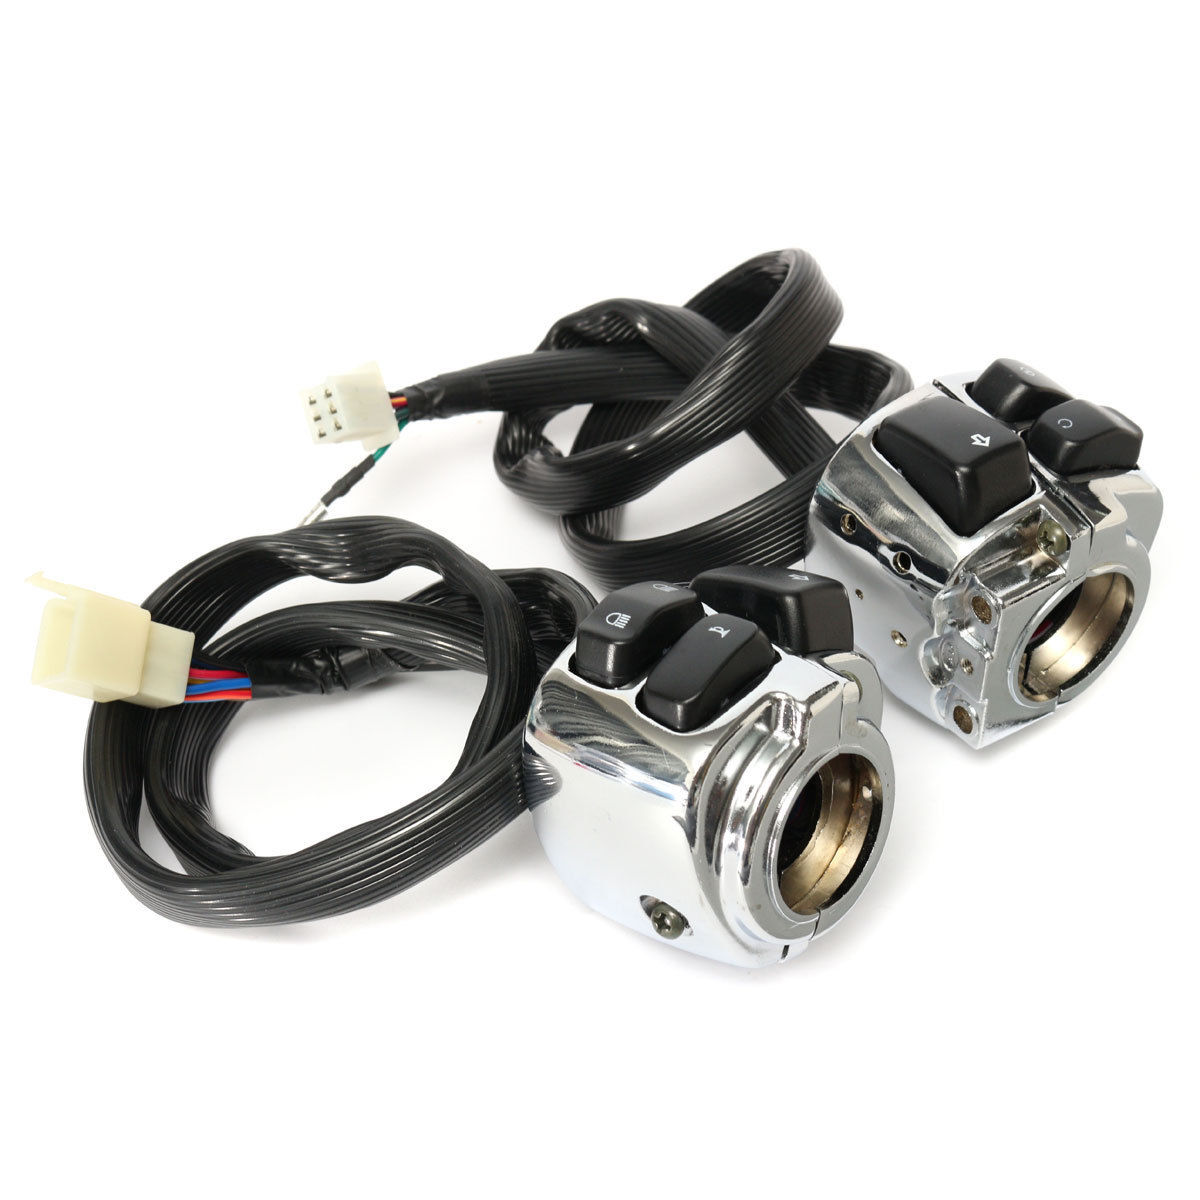 1 Pair 100percent brand new and high quality 25mm Motorcycle Chrome Handlebar Switches with Wiring Harness for Harley